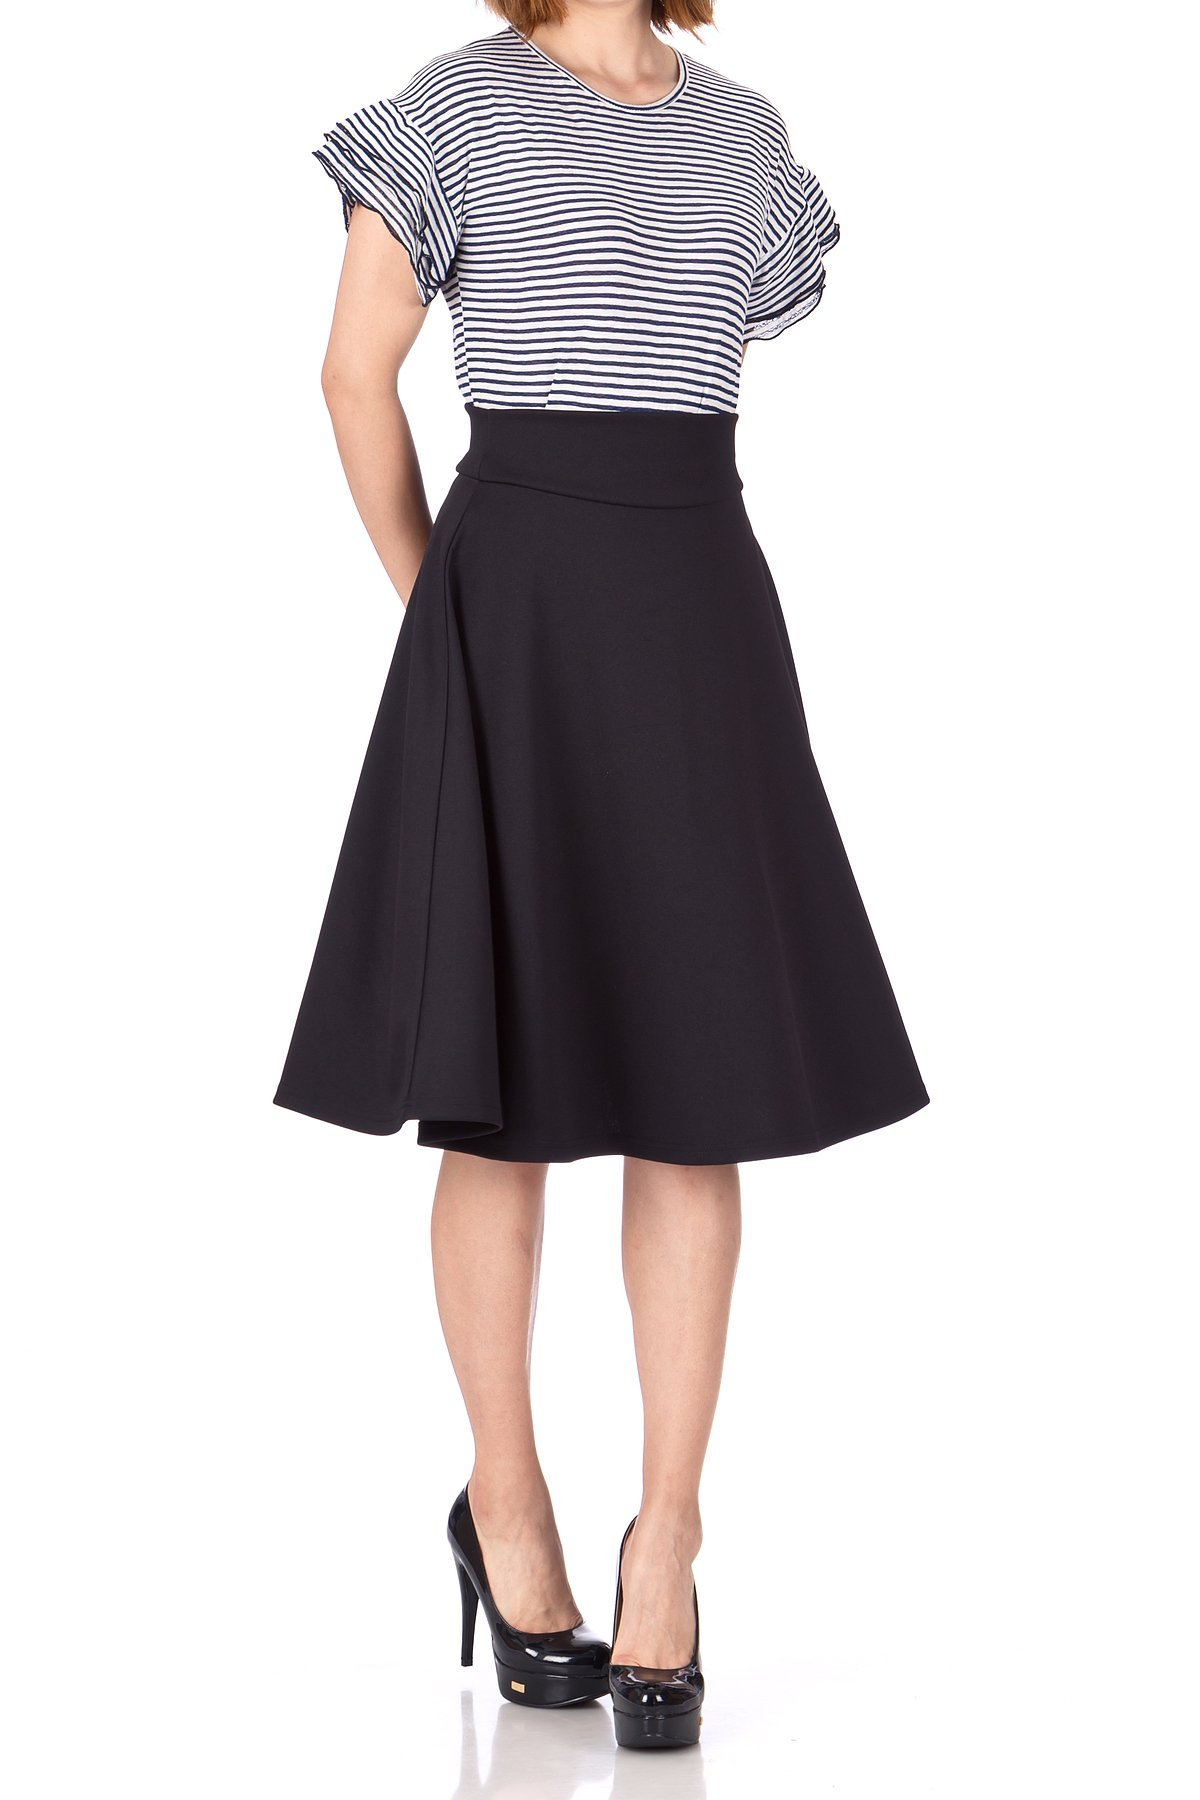 Stunning Wide High Waist A line Full Flared Swing Office Dance Party Casual Circle Skater Midi Skirt Black 05